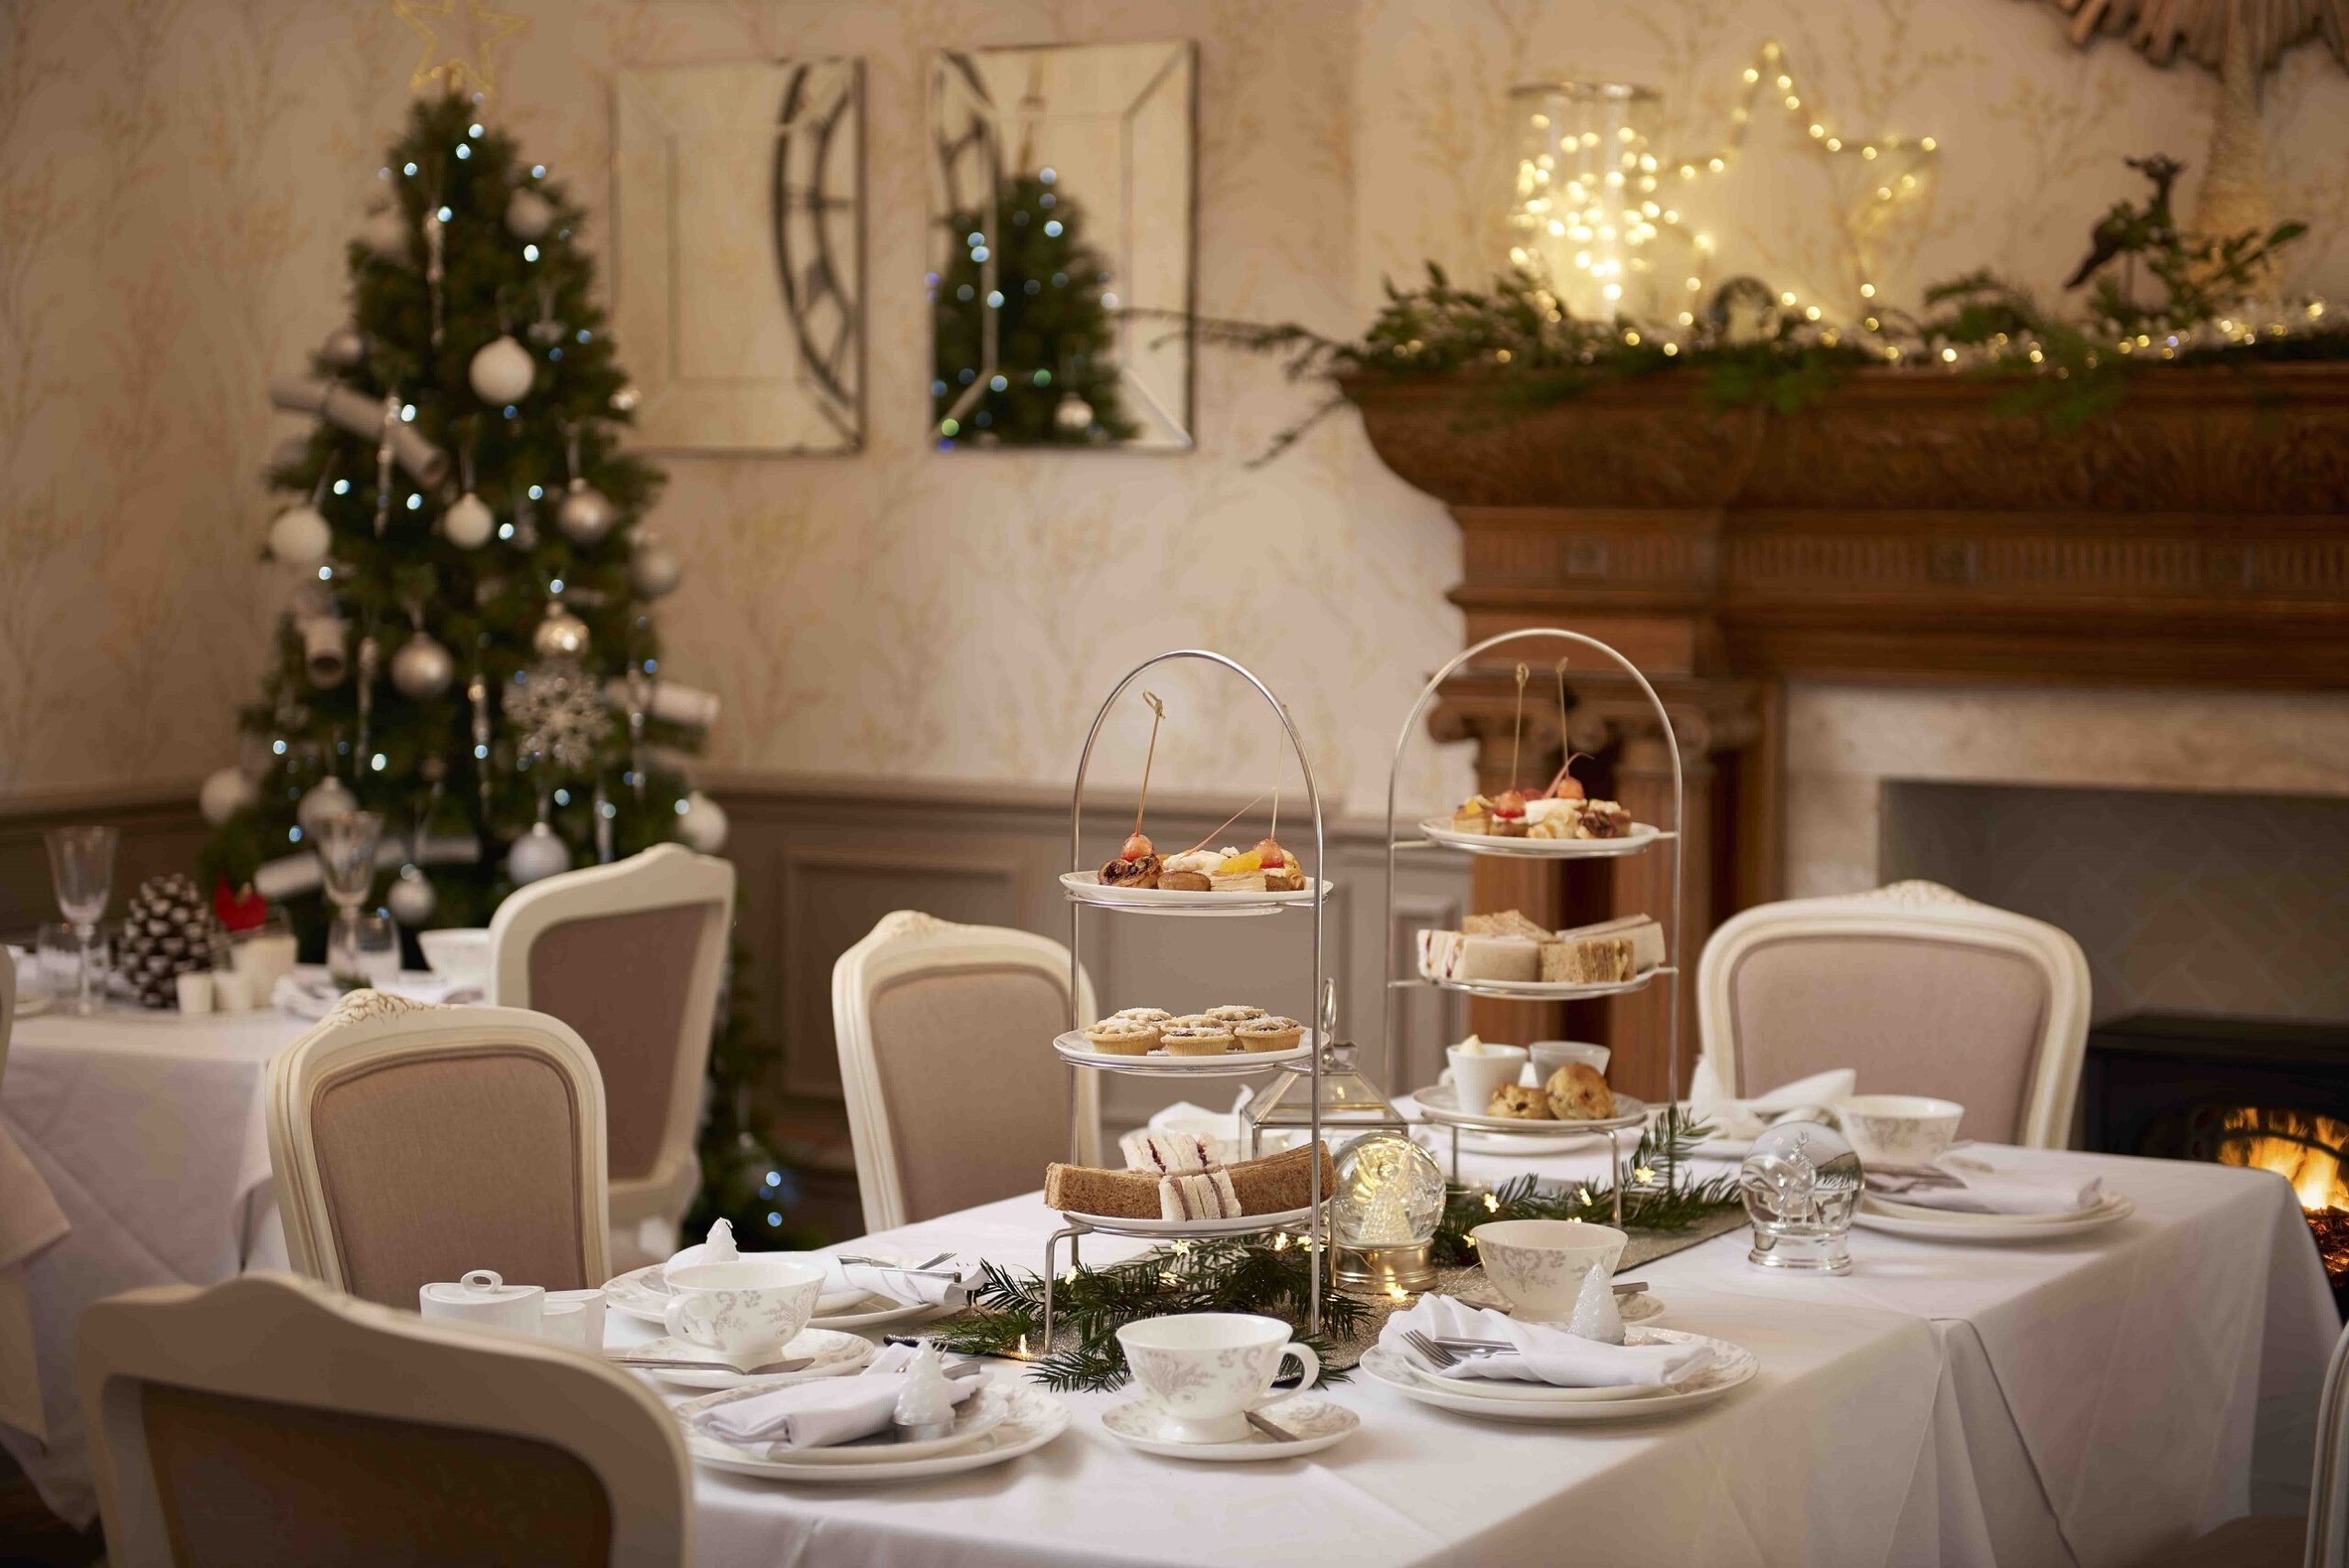 The Regency Hotel at Christmas